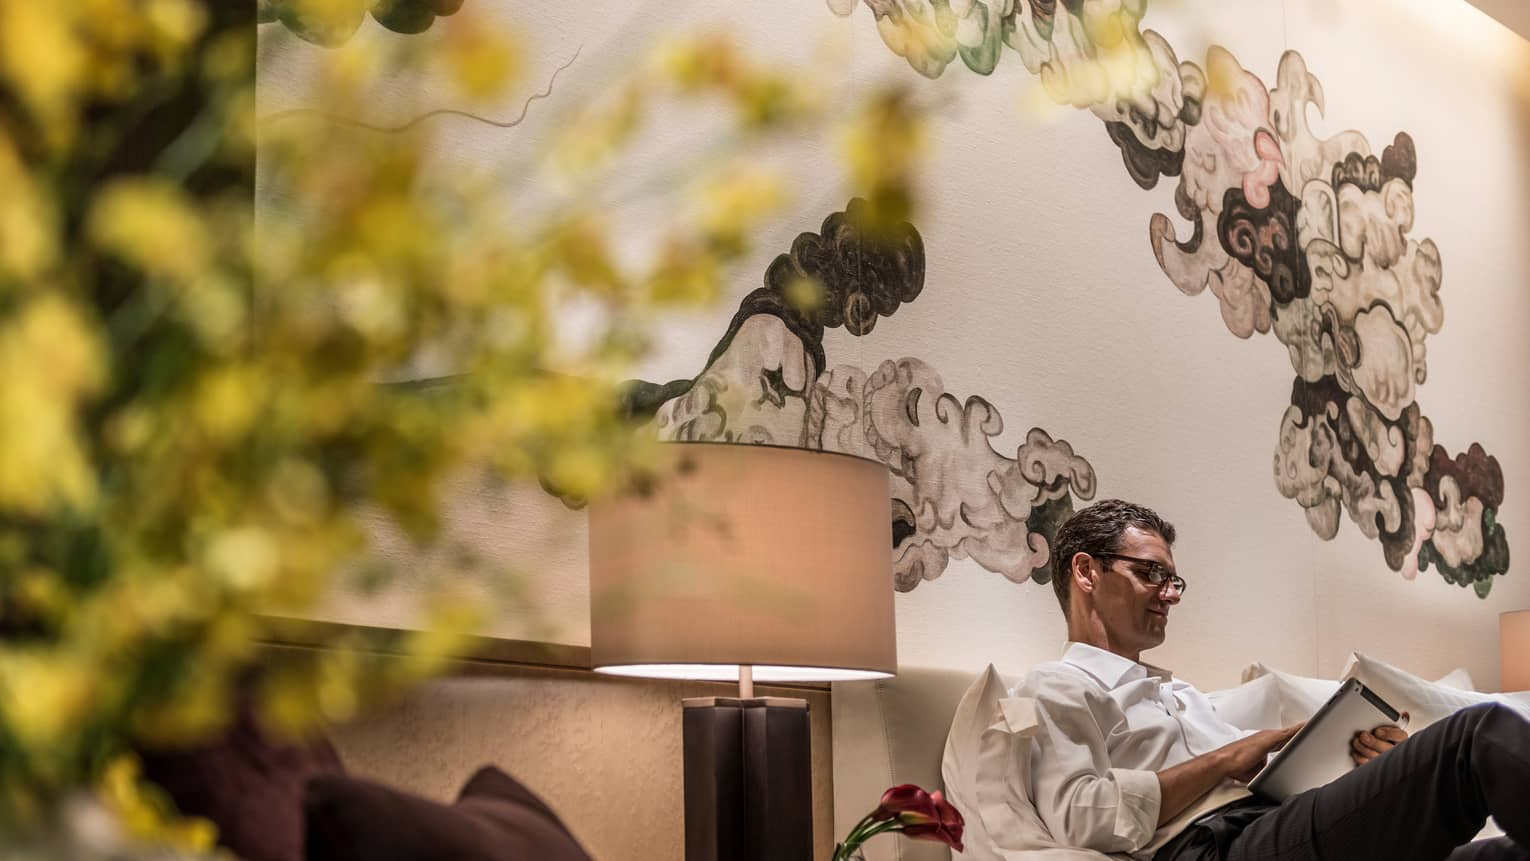 Man lounges, reads iPad on sofa next to lamp under black-and-white Chinese brushwork mural